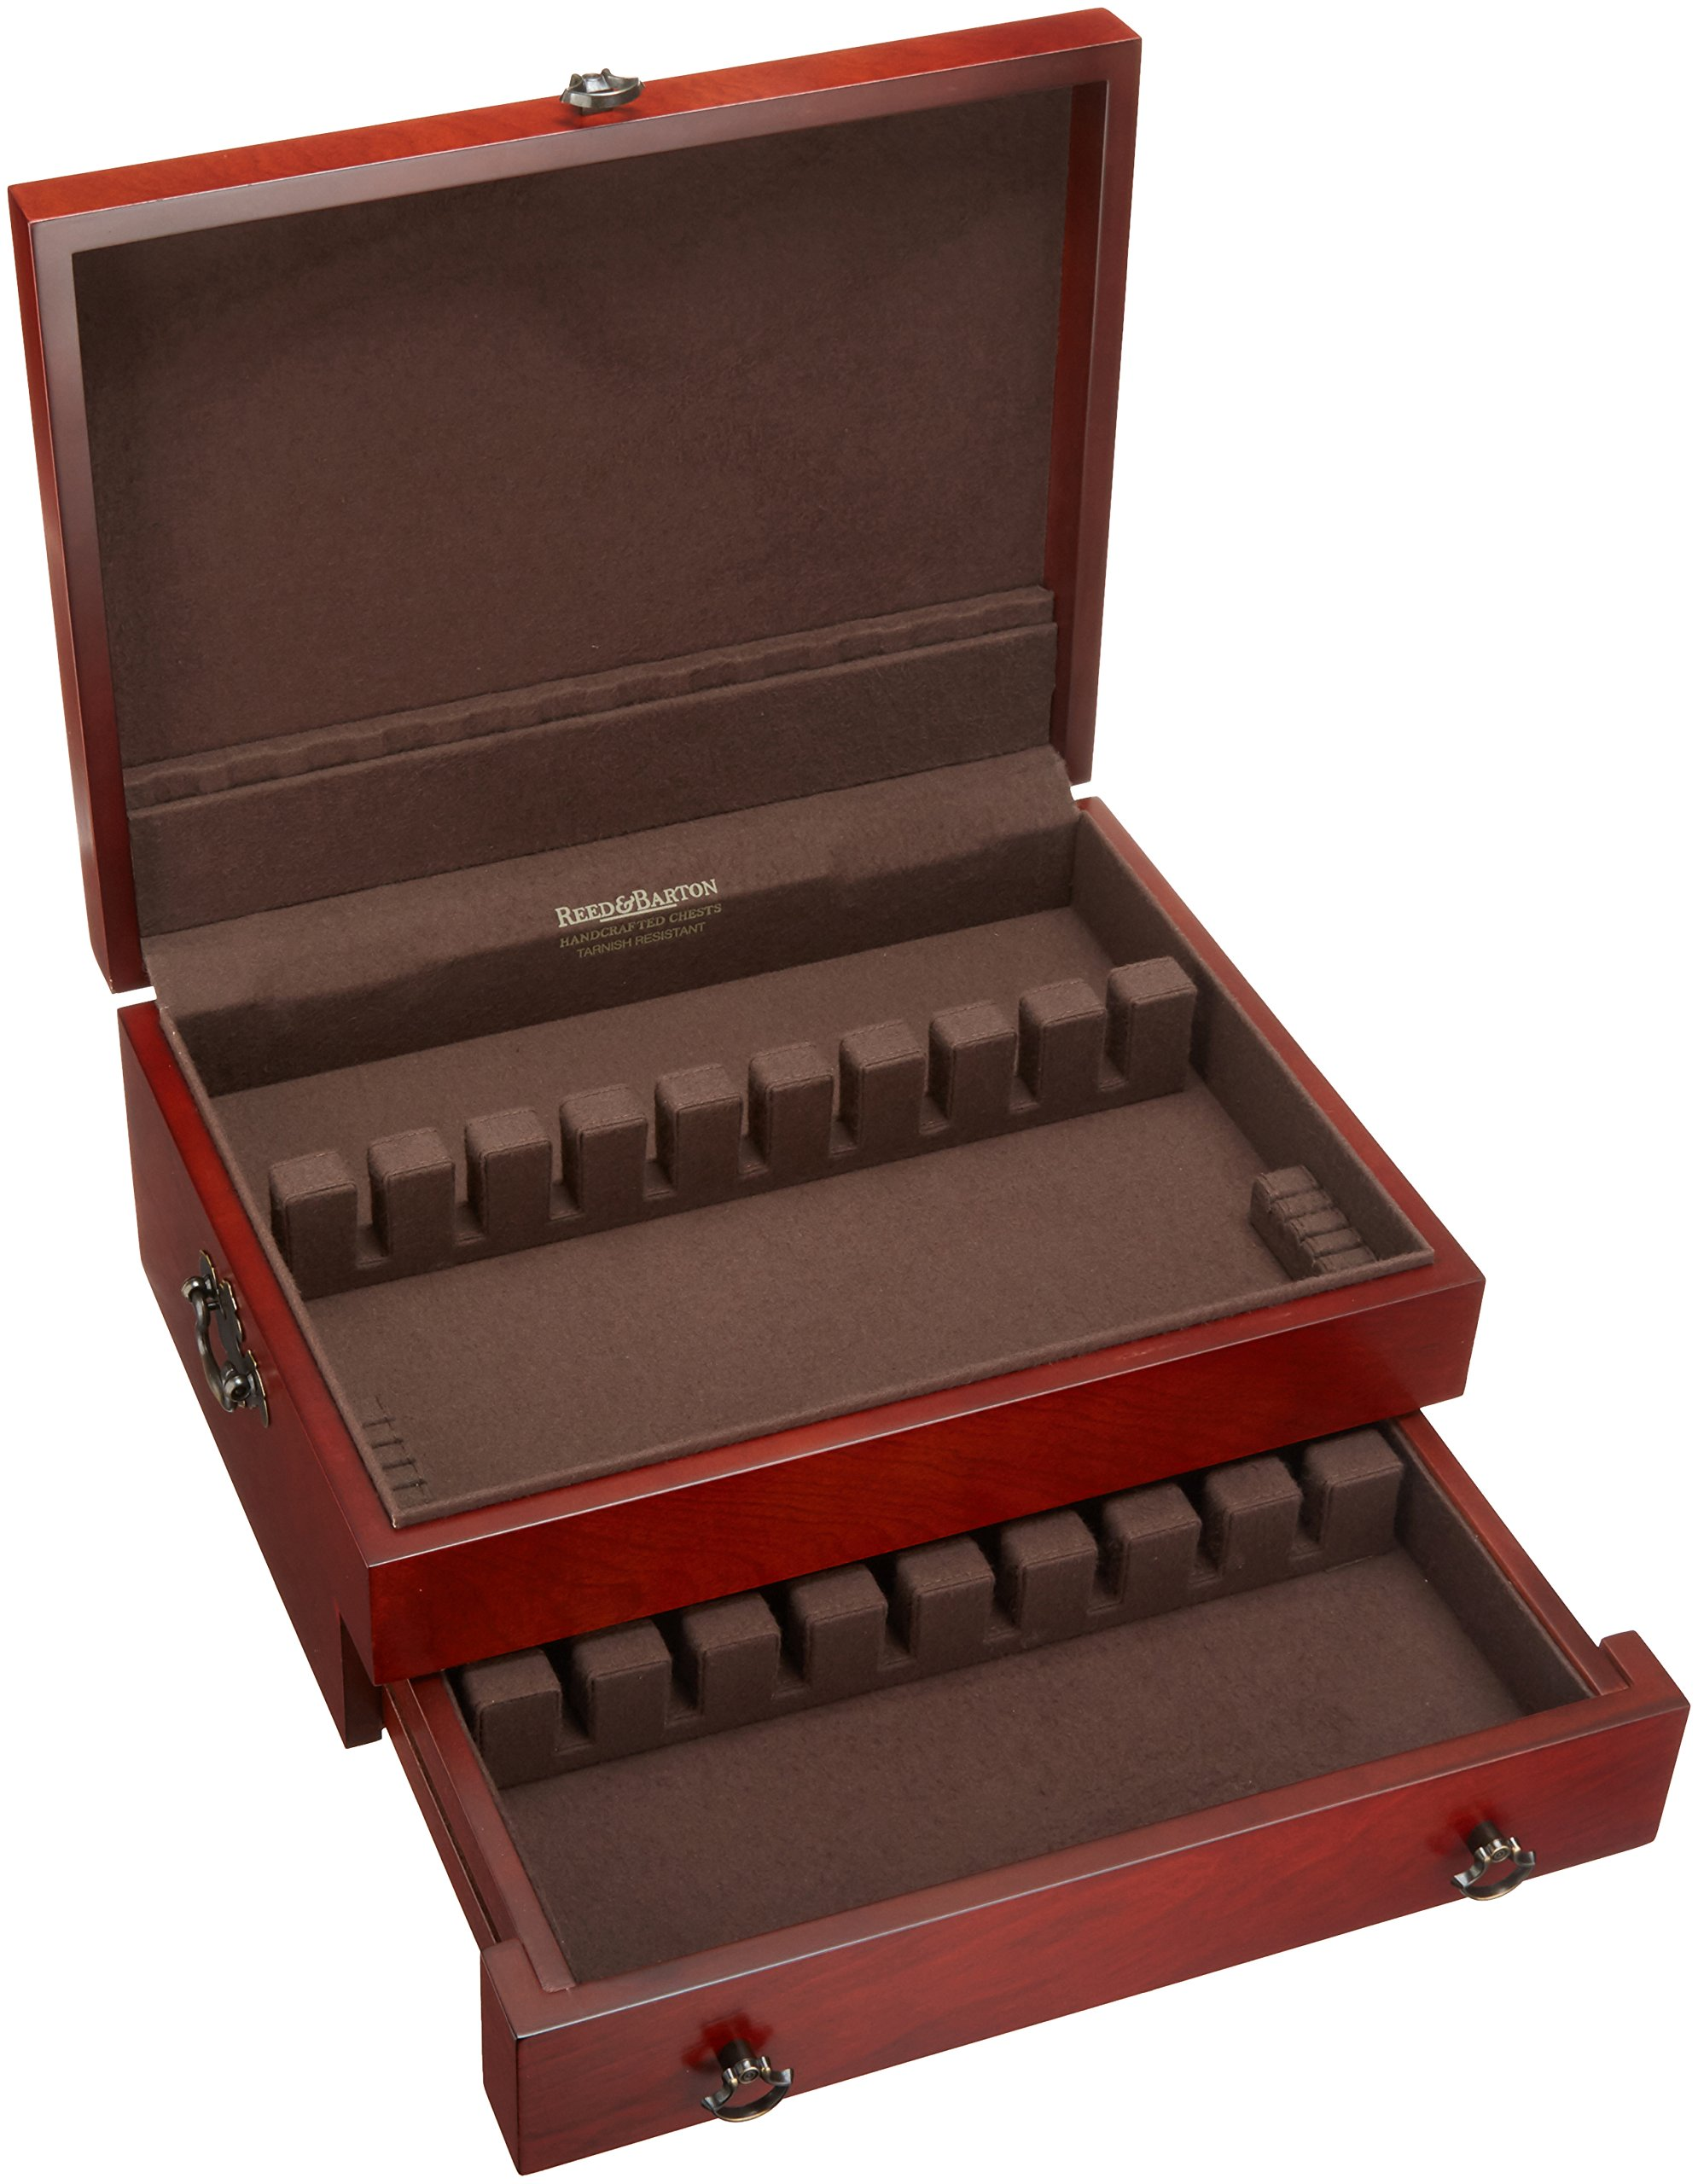 Reed & Barton Bristol Flatware Chest by Reed & Barton (Image #3)